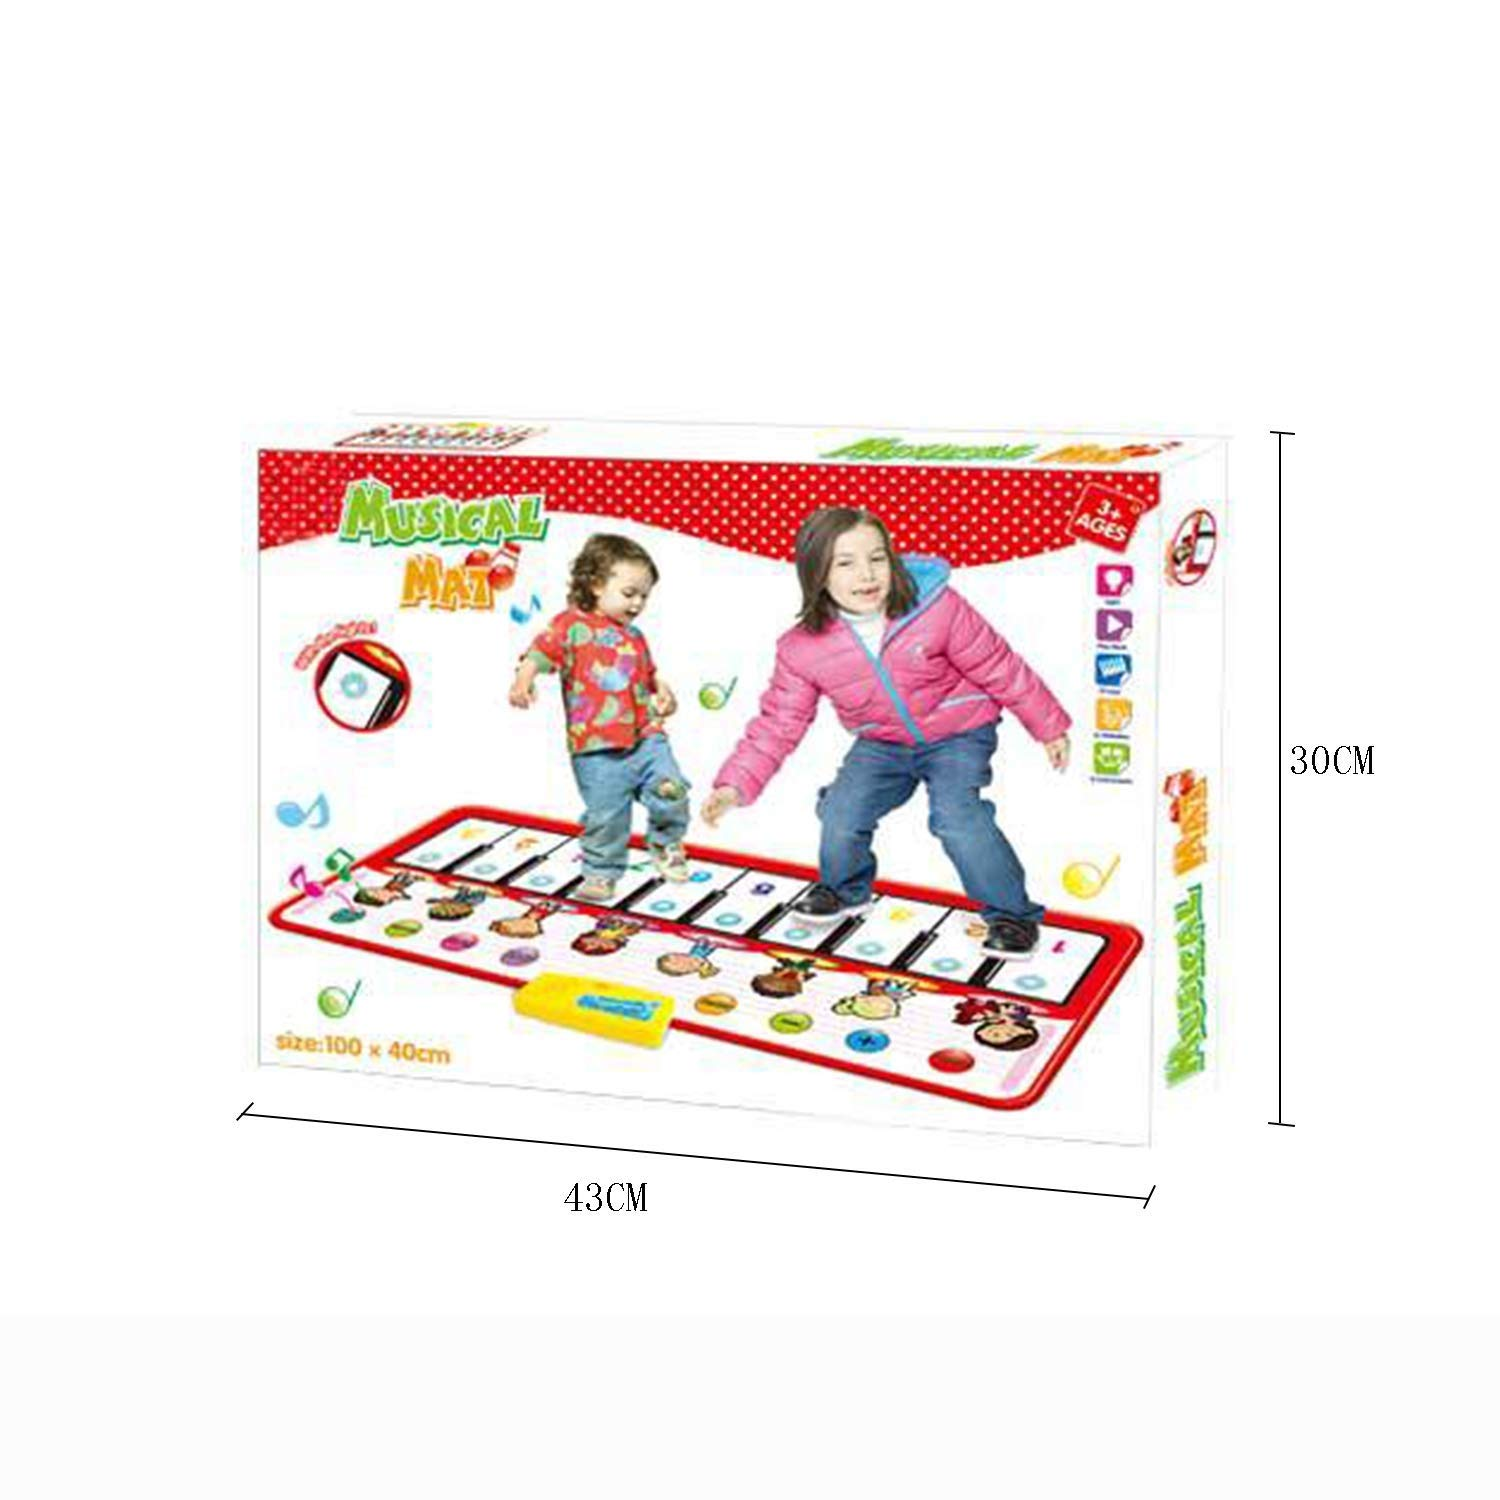 YFQ Crawling Mat Electronic Piano Multi-Function Children's Music Crawling Blanket Game Pad Early Education Toy Mat Environmental Protection Educational Toys by YFQ (Image #7)